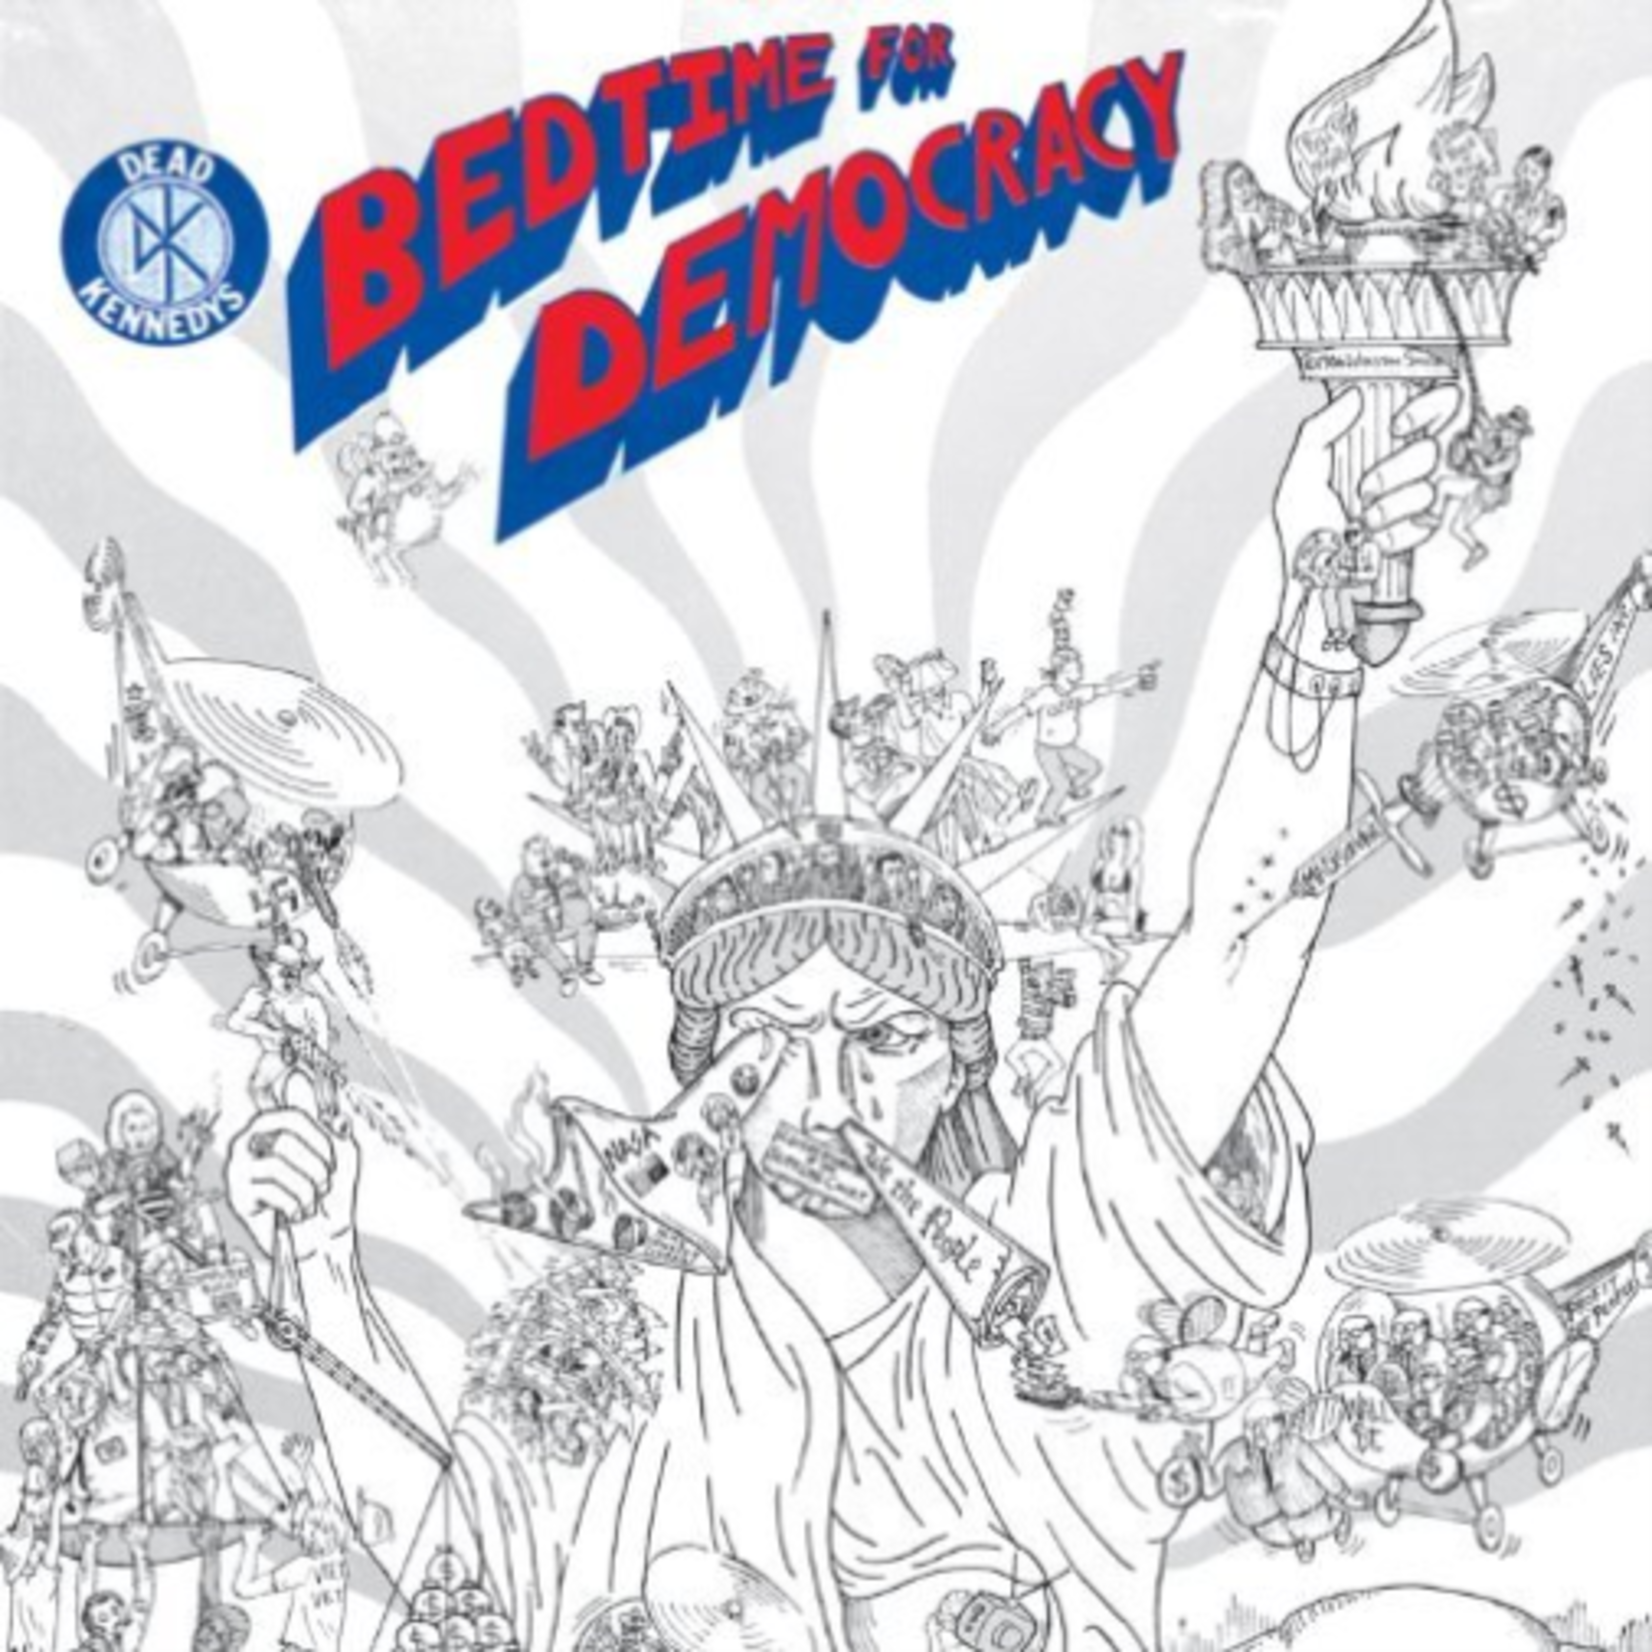 DEAD KENNEDYS BEDTIME FOR DEMOCRACY